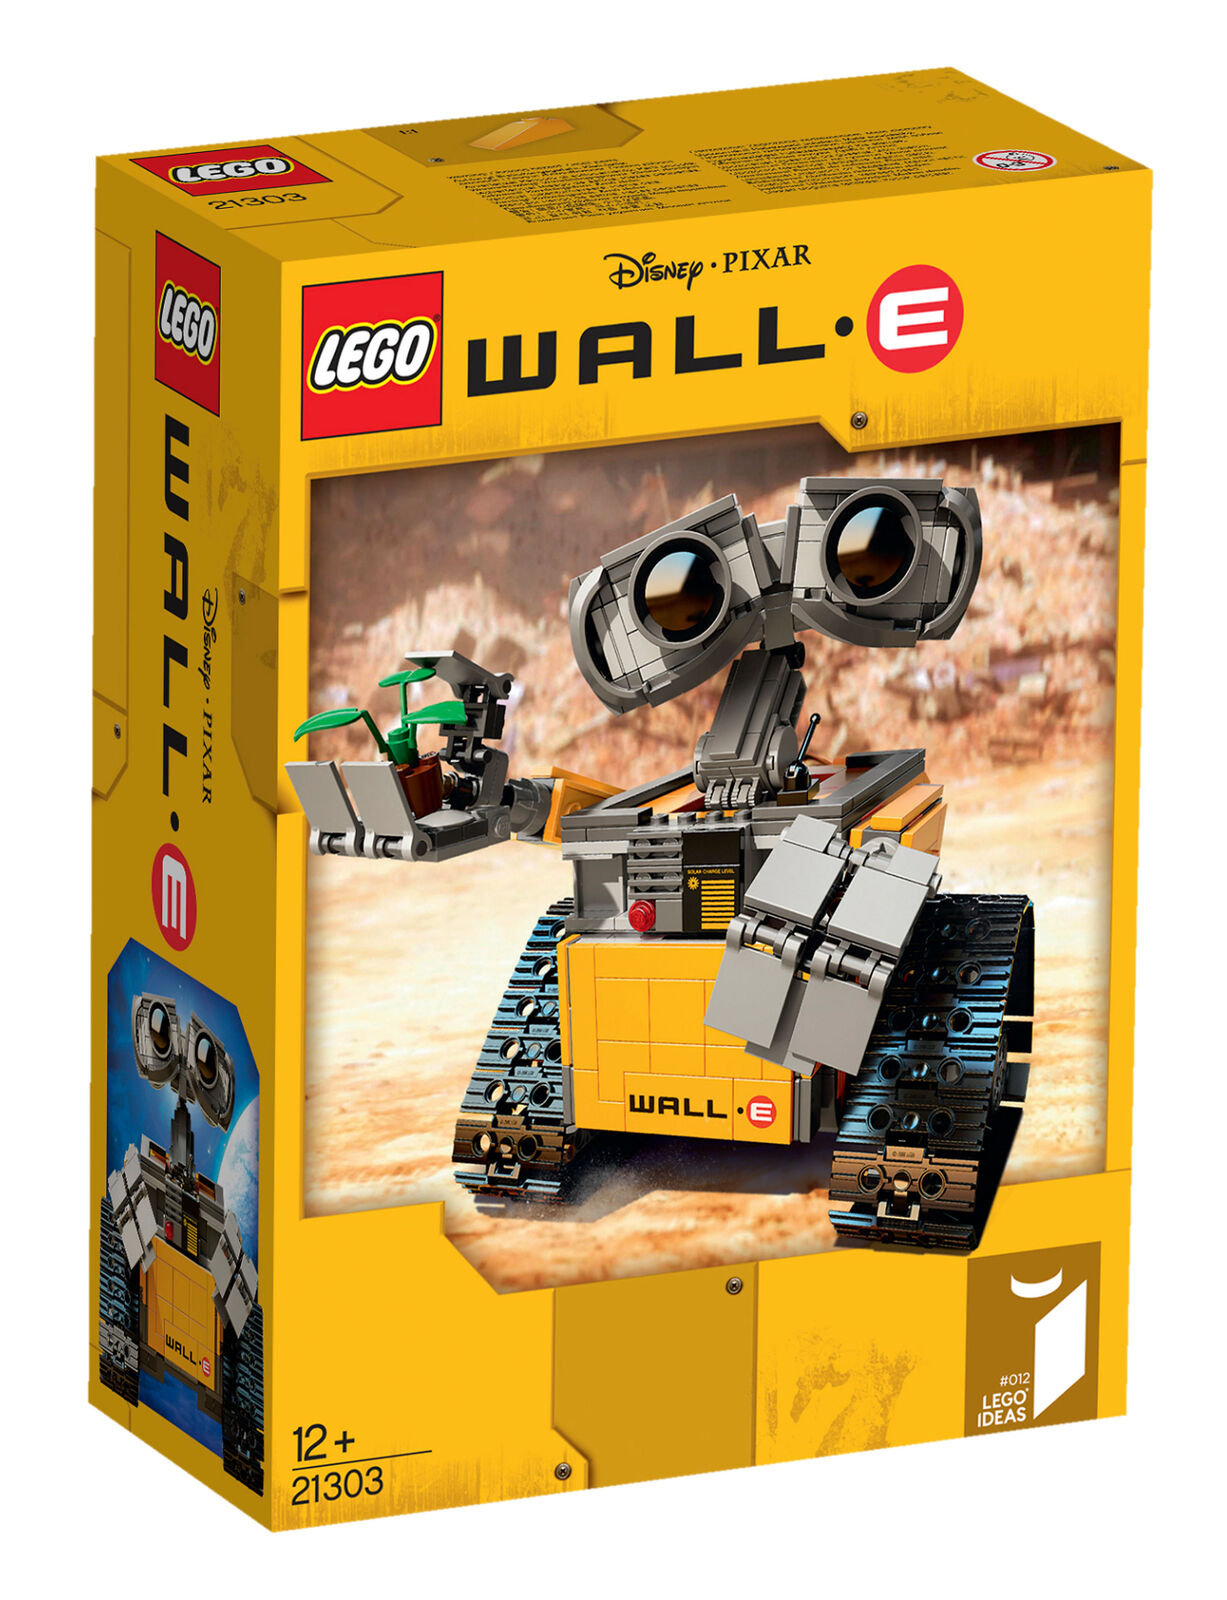 LEGO Ideas WALL-E (21303) free UK Postage